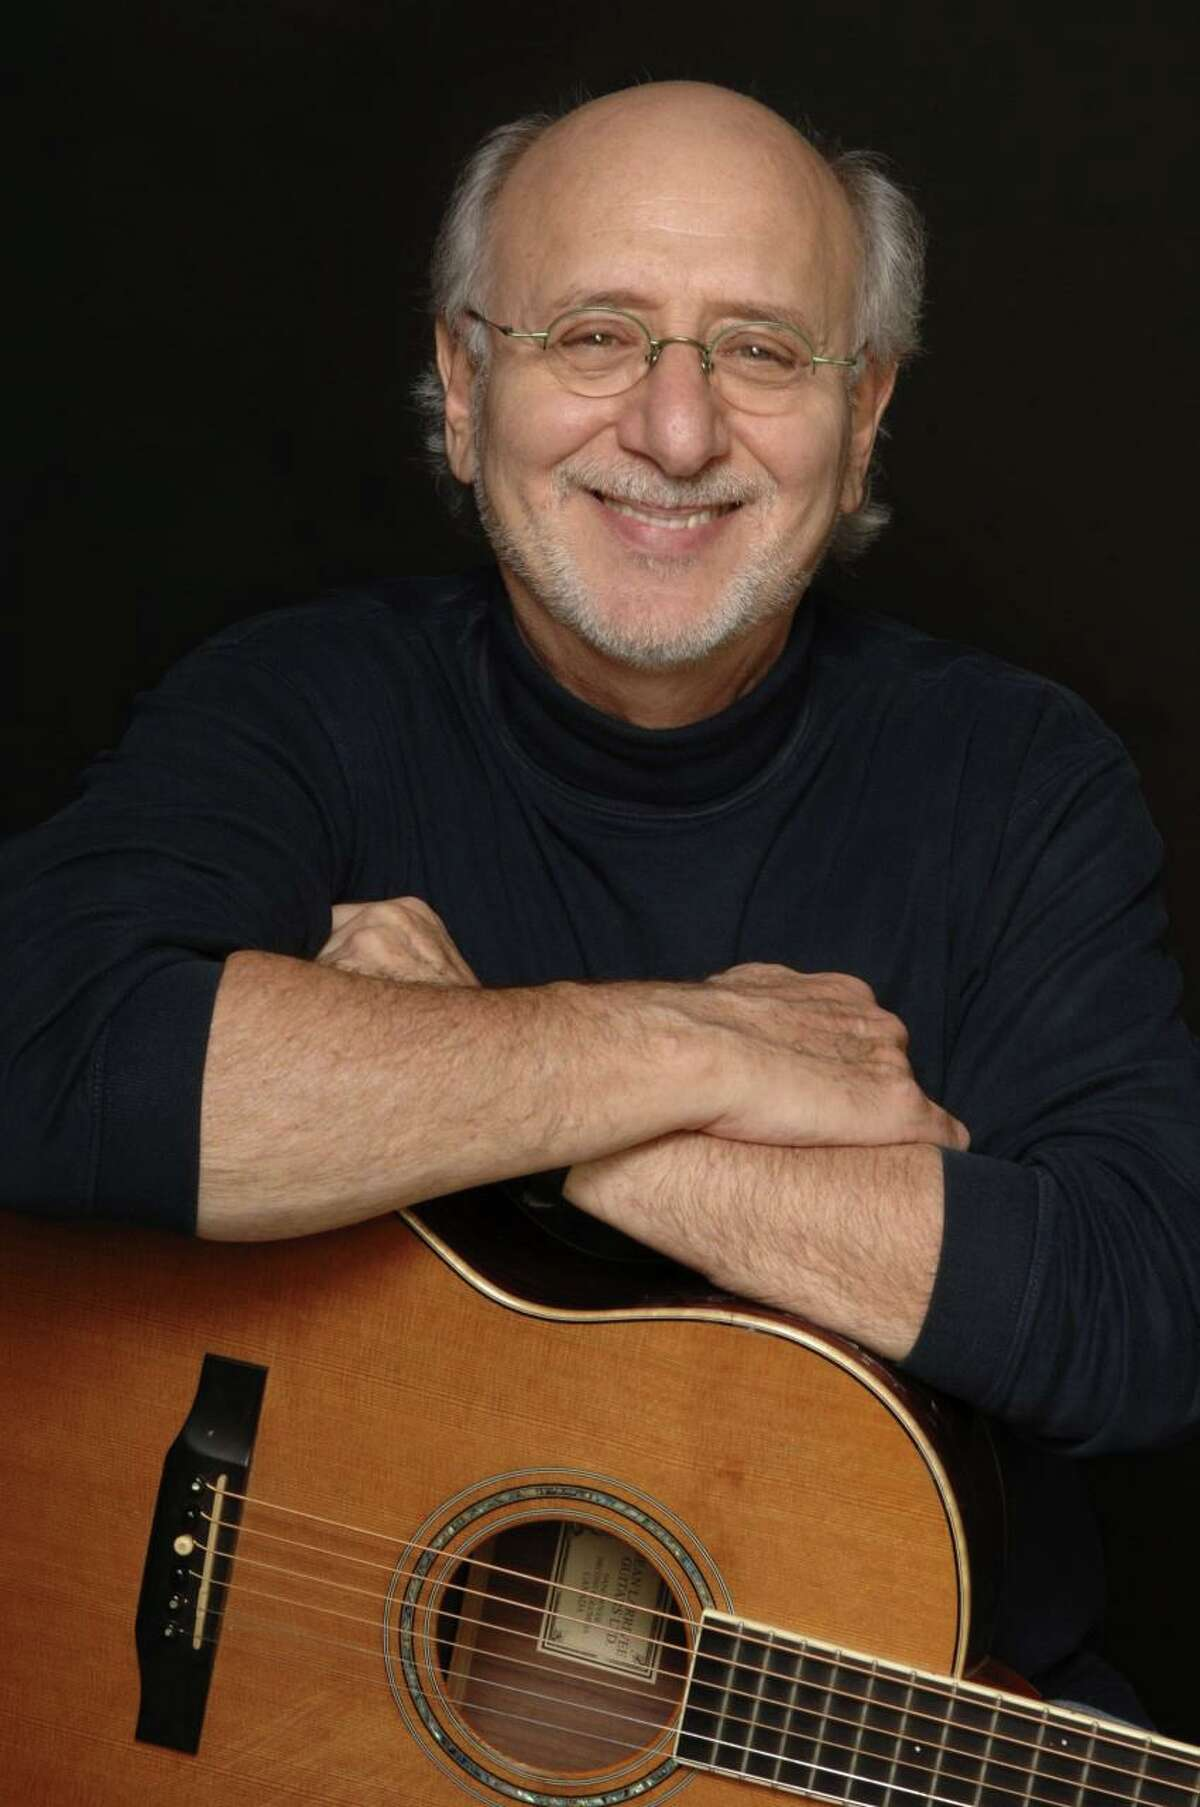 Peter Yarrow was set to be a guest artist when The Flagpole Radio Café returned to Edmond Town Hall in Newtown, March 21, but the show has been postponed.